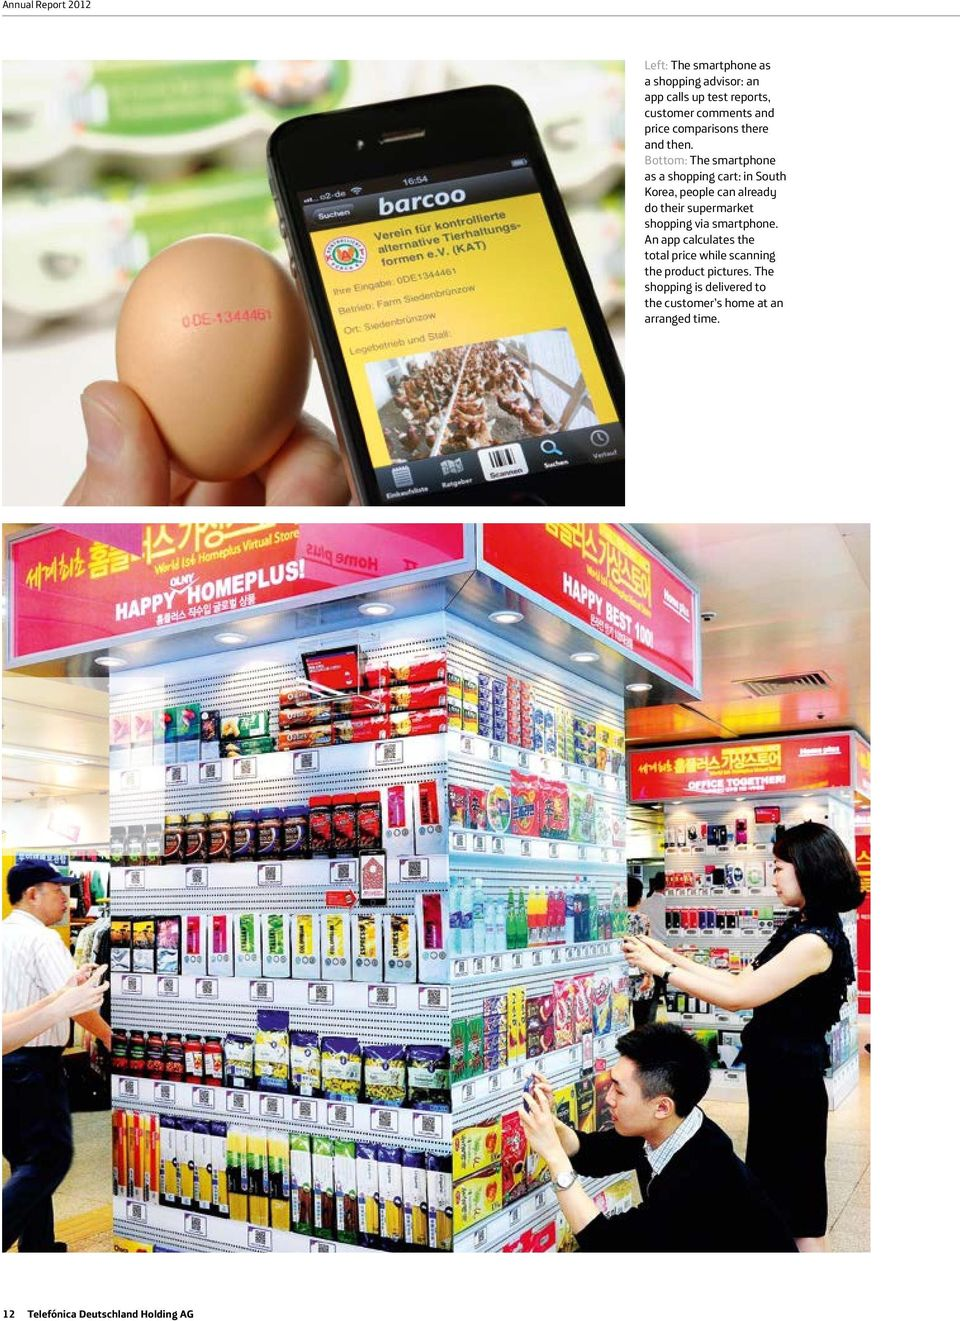 Bottom: The smartphone as a shopping cart: in South Korea, people can already do their supermarket shopping via